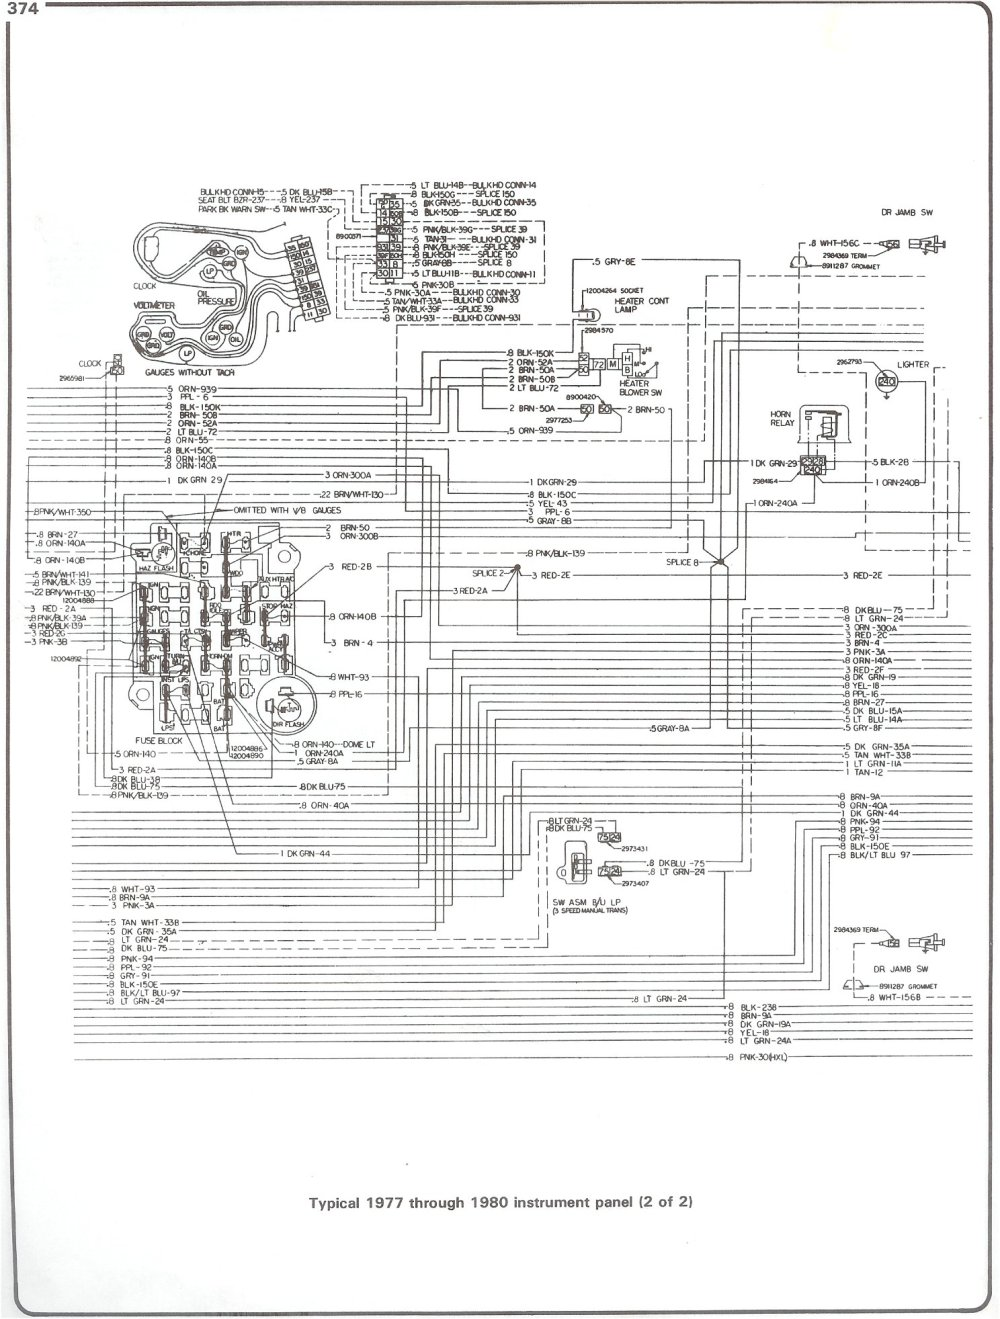 medium resolution of 77 80 intrument panel page 2